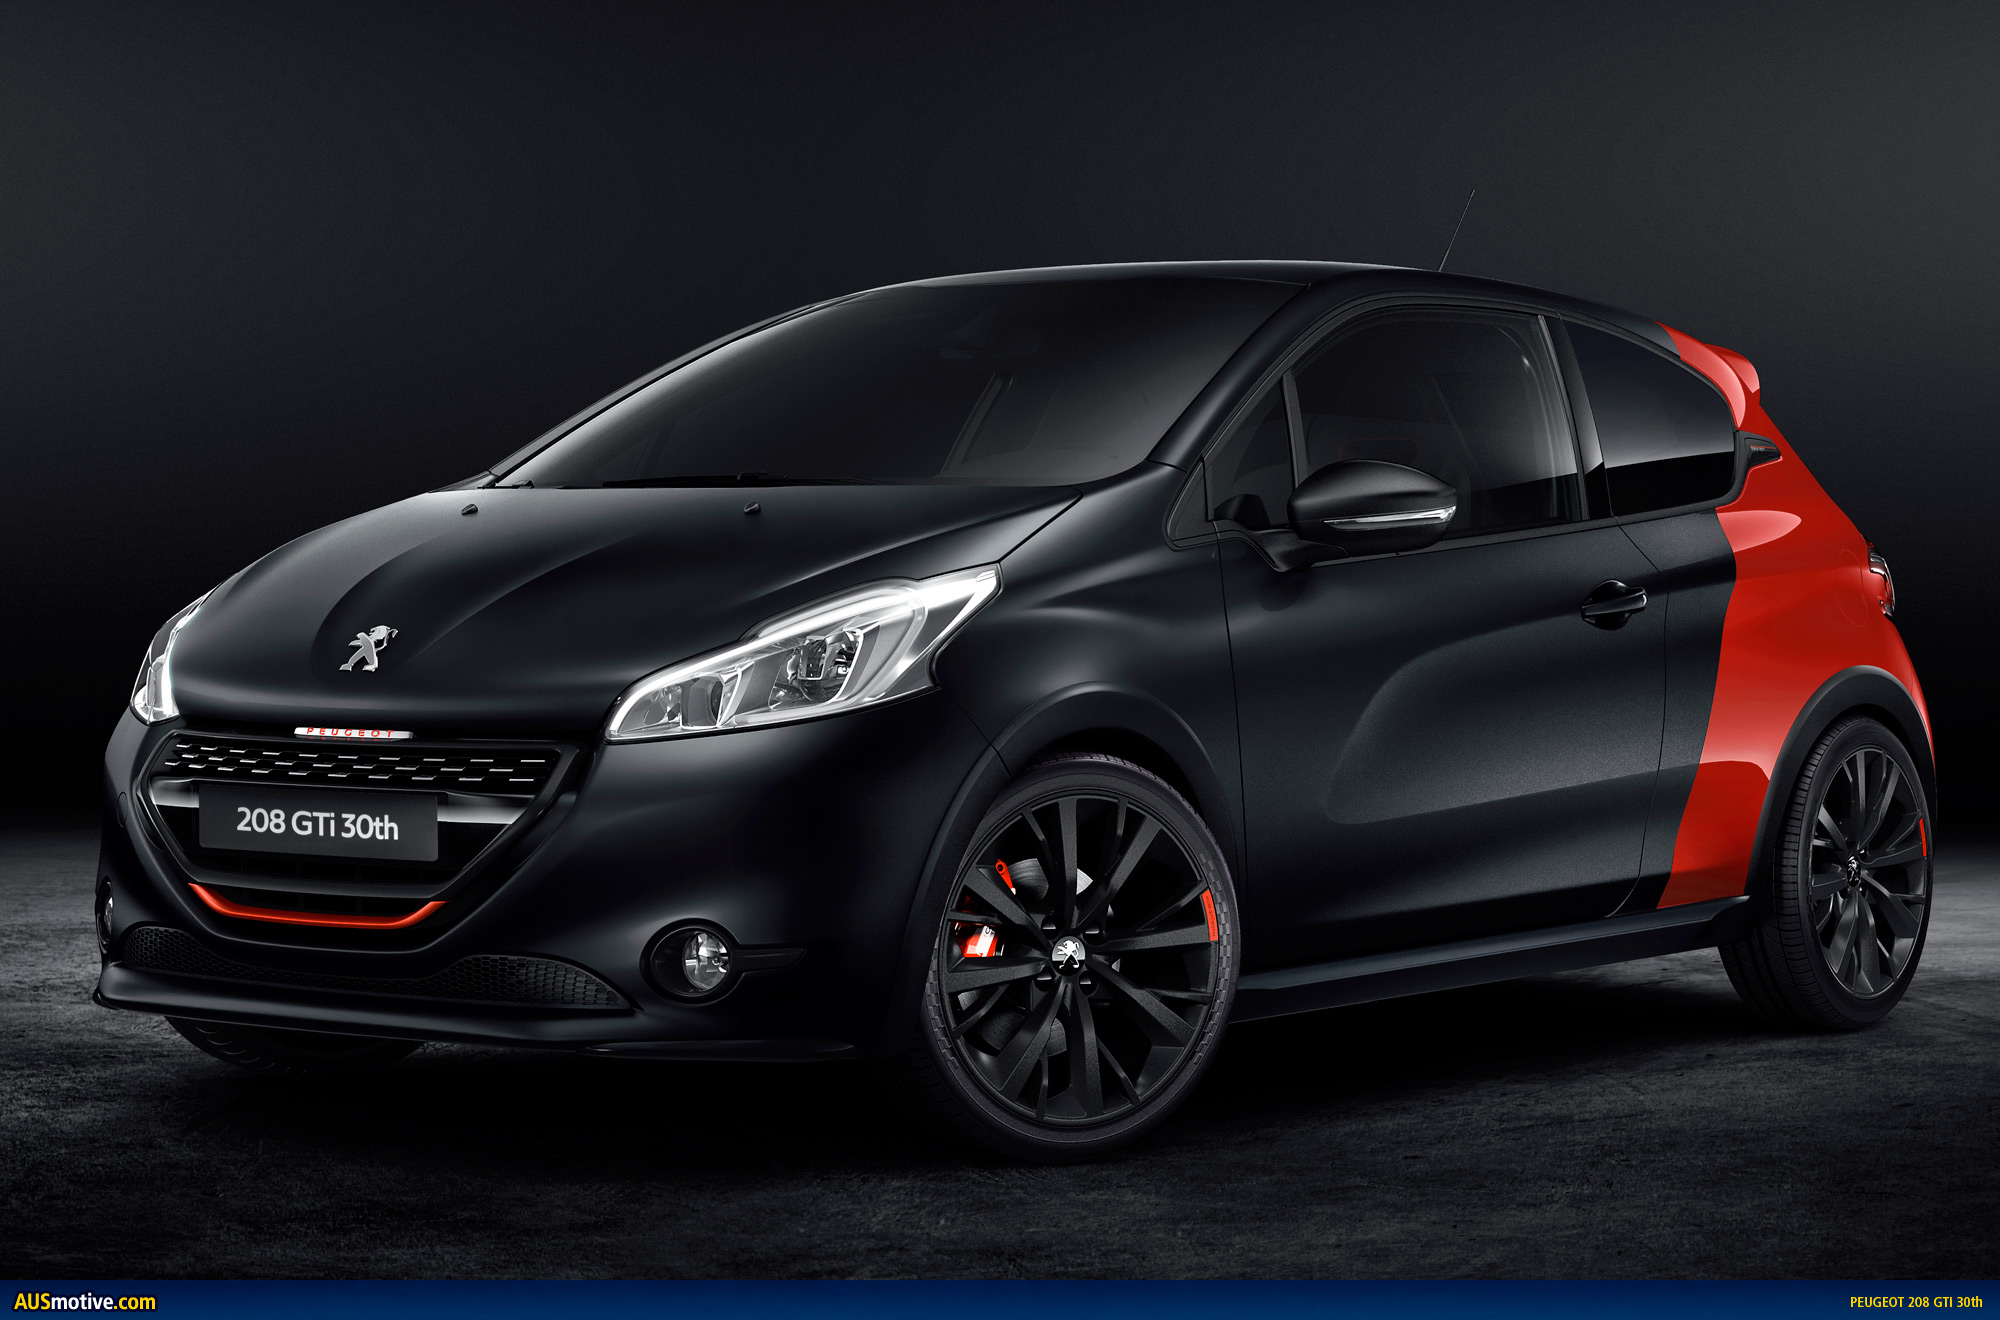 peugeot 208 gti 30th anniversary revealed. Black Bedroom Furniture Sets. Home Design Ideas